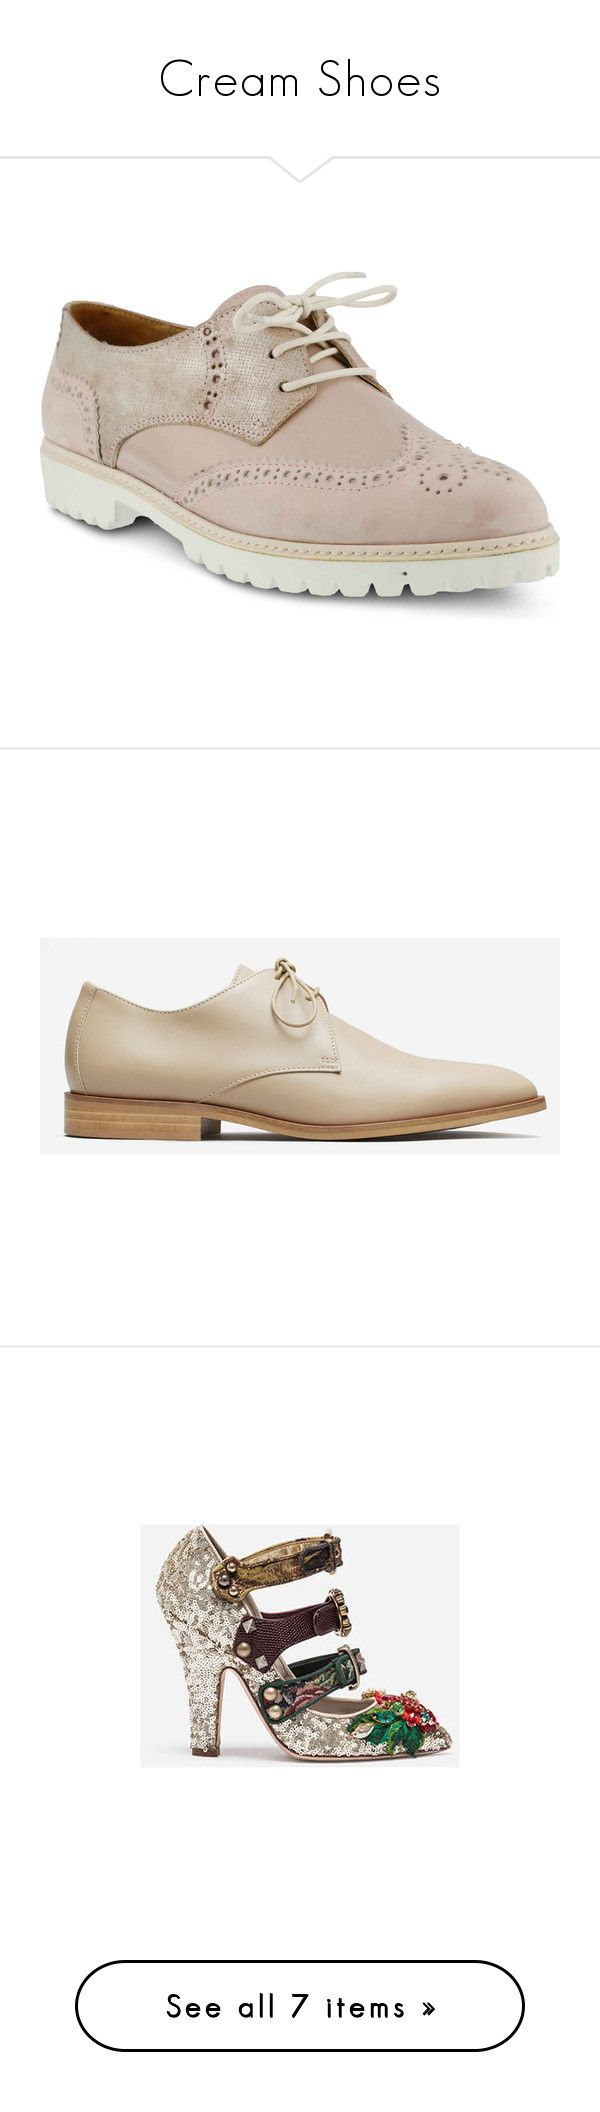 """""""Cream Shoes"""" by izzystarsparkle ❤ liked on Polyvore featuring shoes, oxfords, nubuck leather shoes, wing tip shoes, leather oxford shoes, pink metallic shoes, spring step shoes, cold khaki, khaki shoes and oxford shoes"""